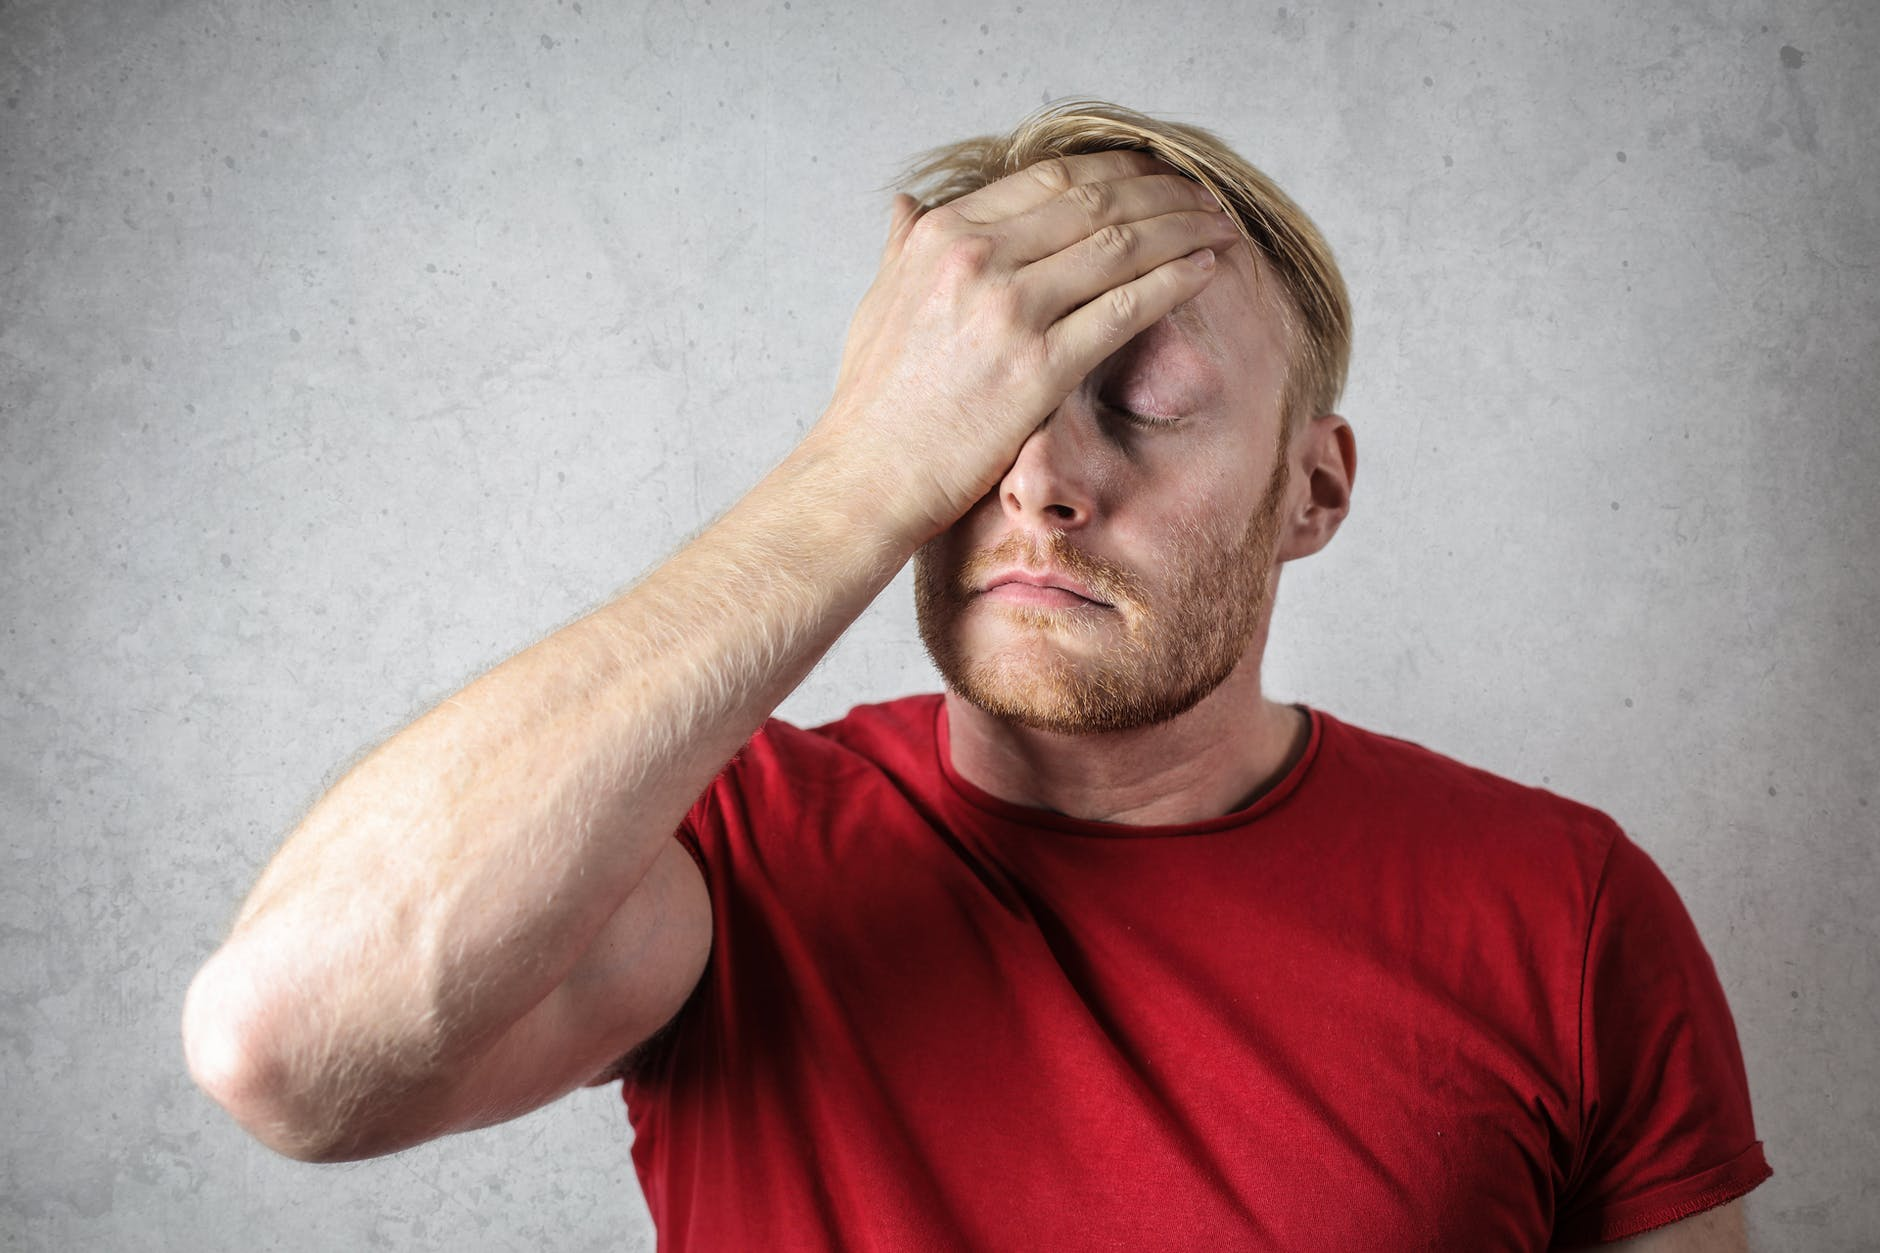 Man with hand to his forehead in frustration | Source: Pexels